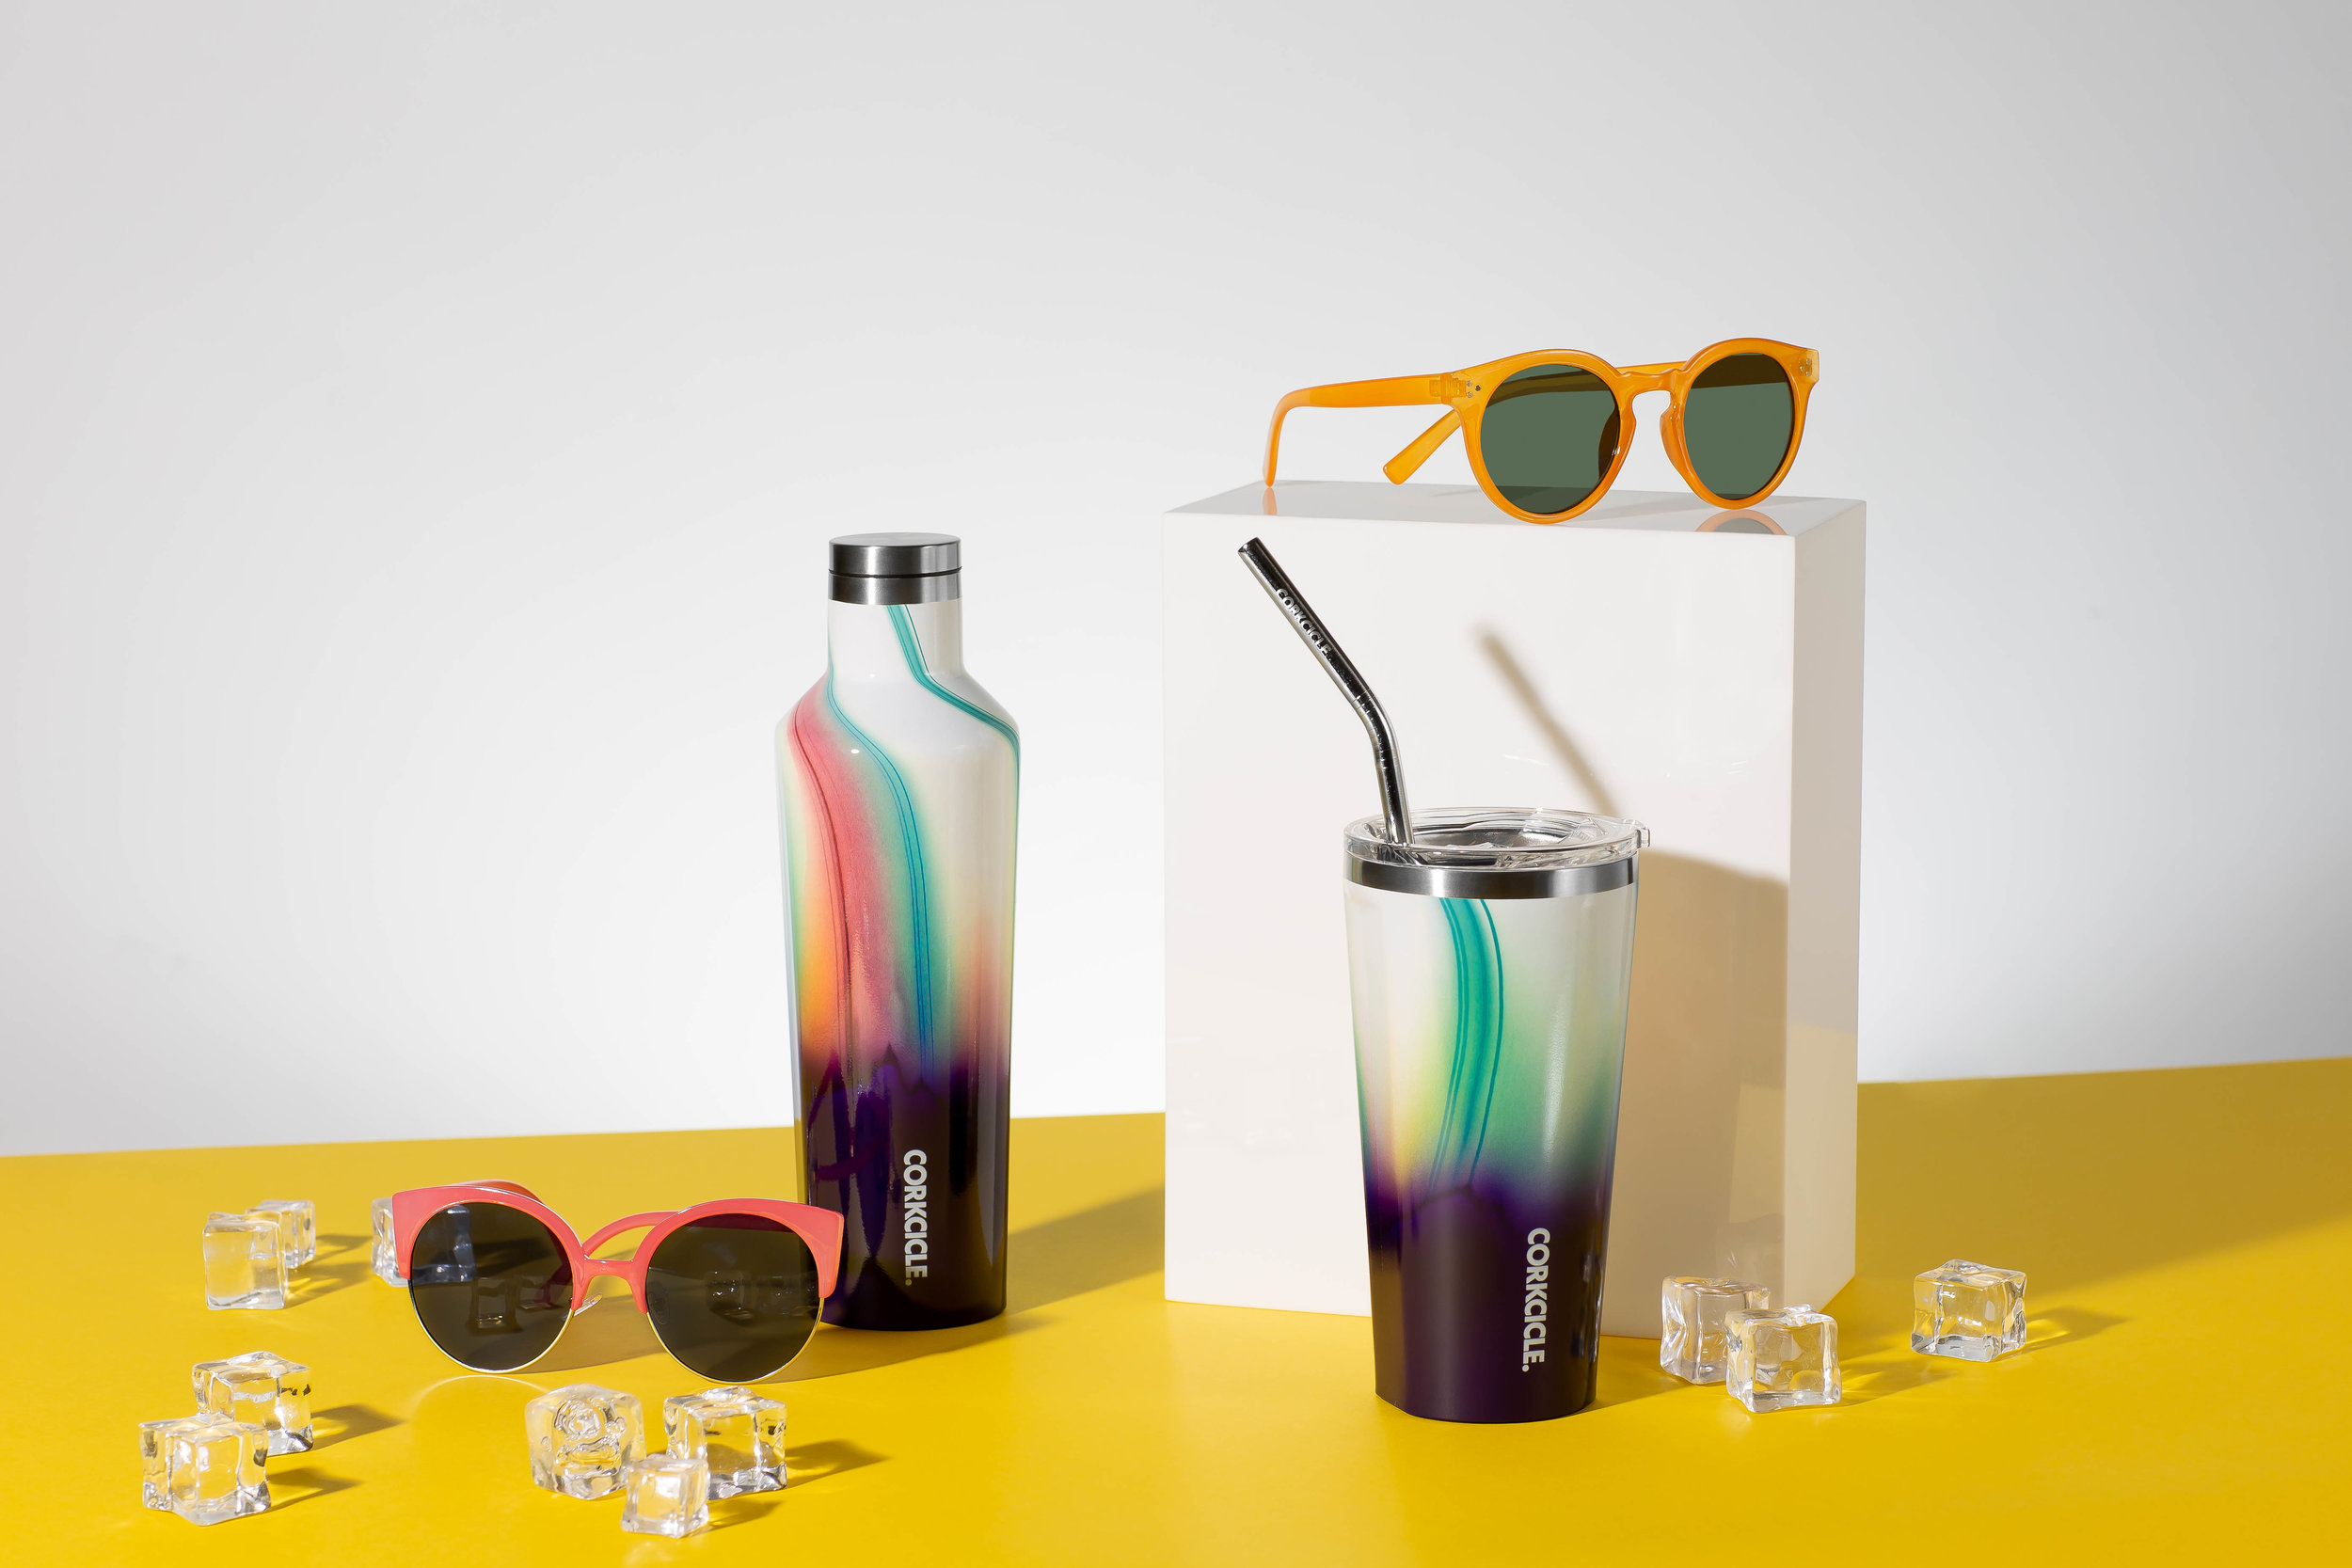 Corkcicle: The sun never sets on cool.